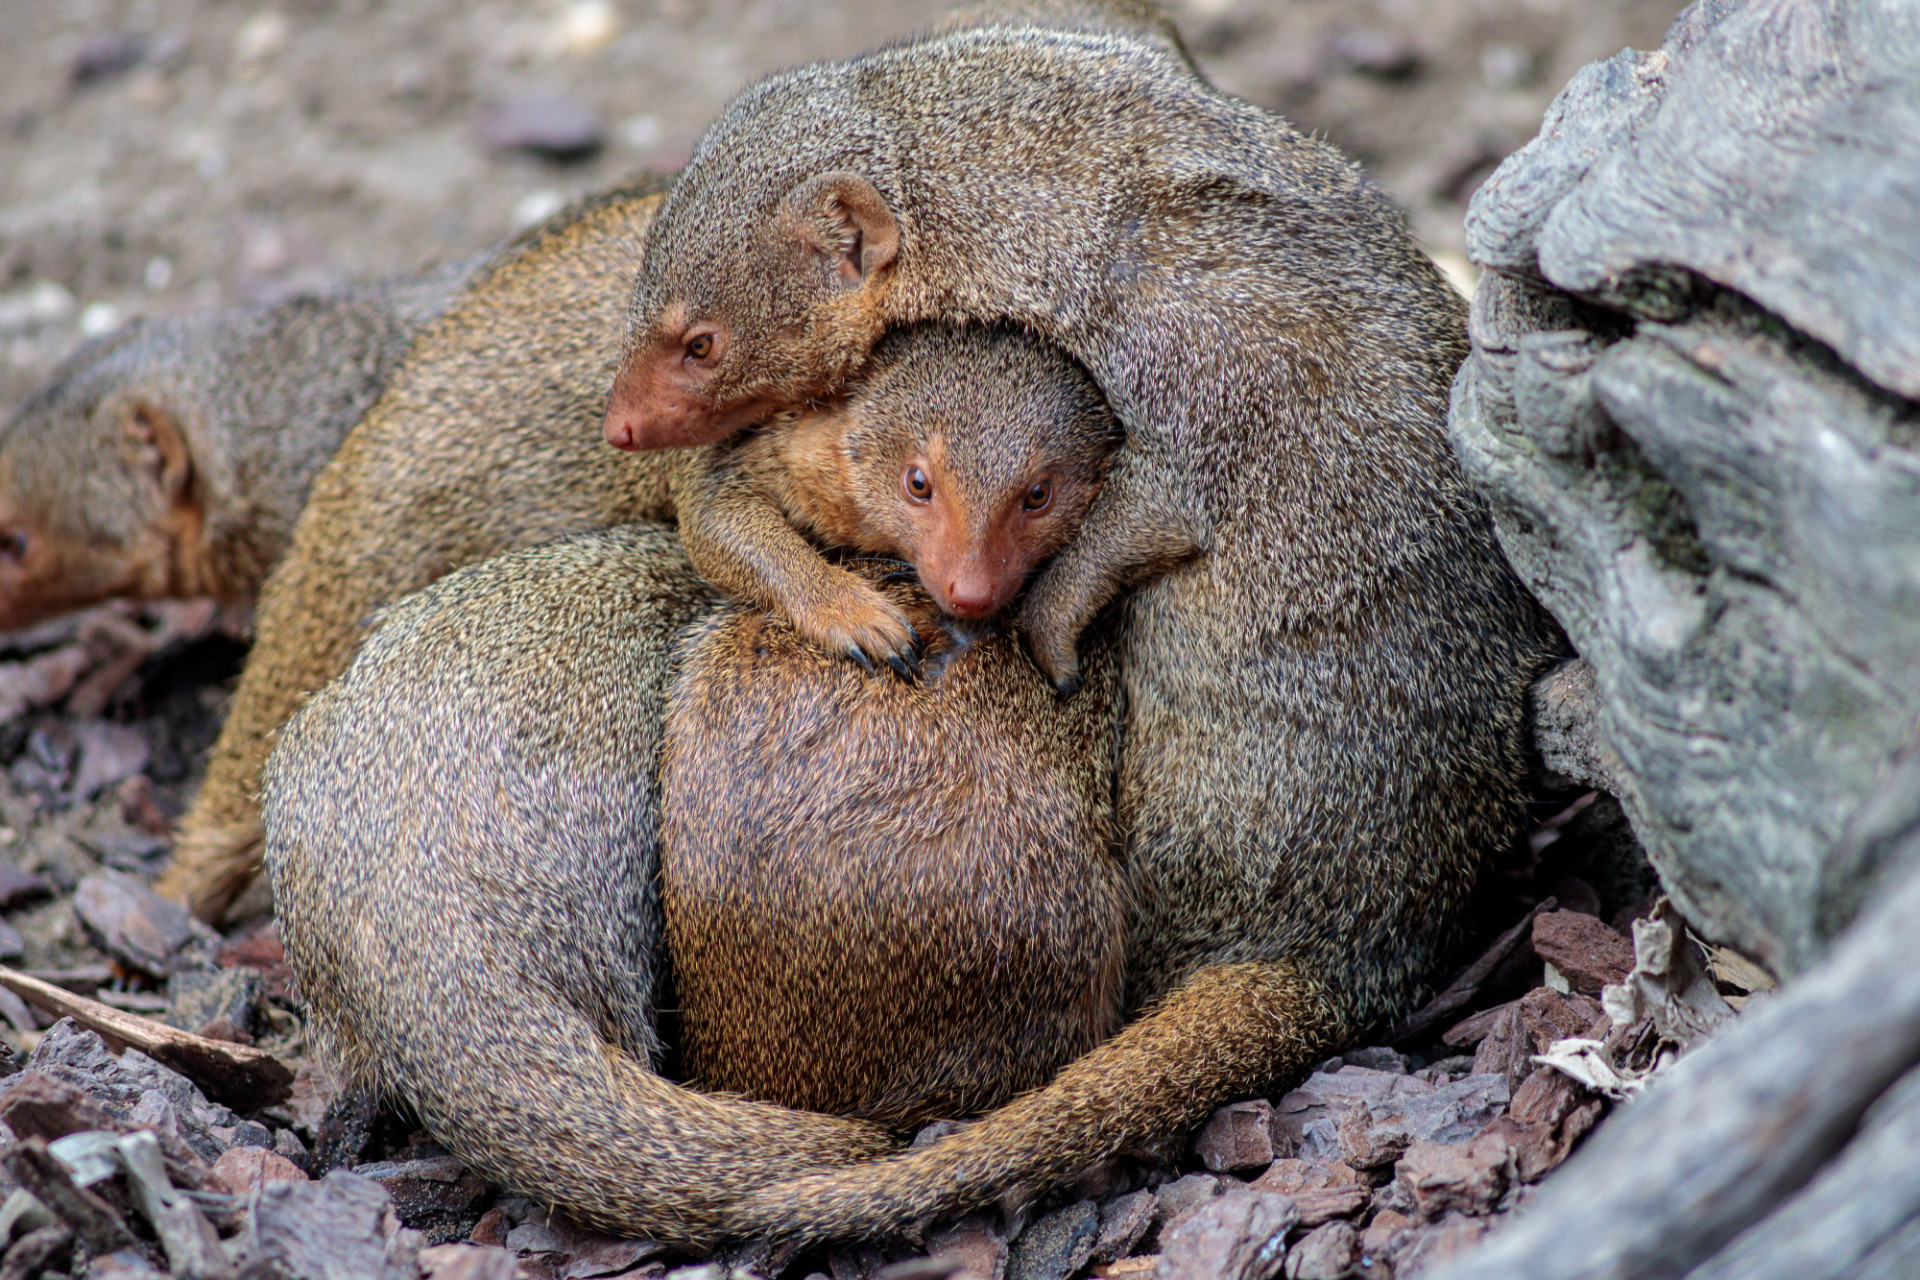 Cuddling Helogale group